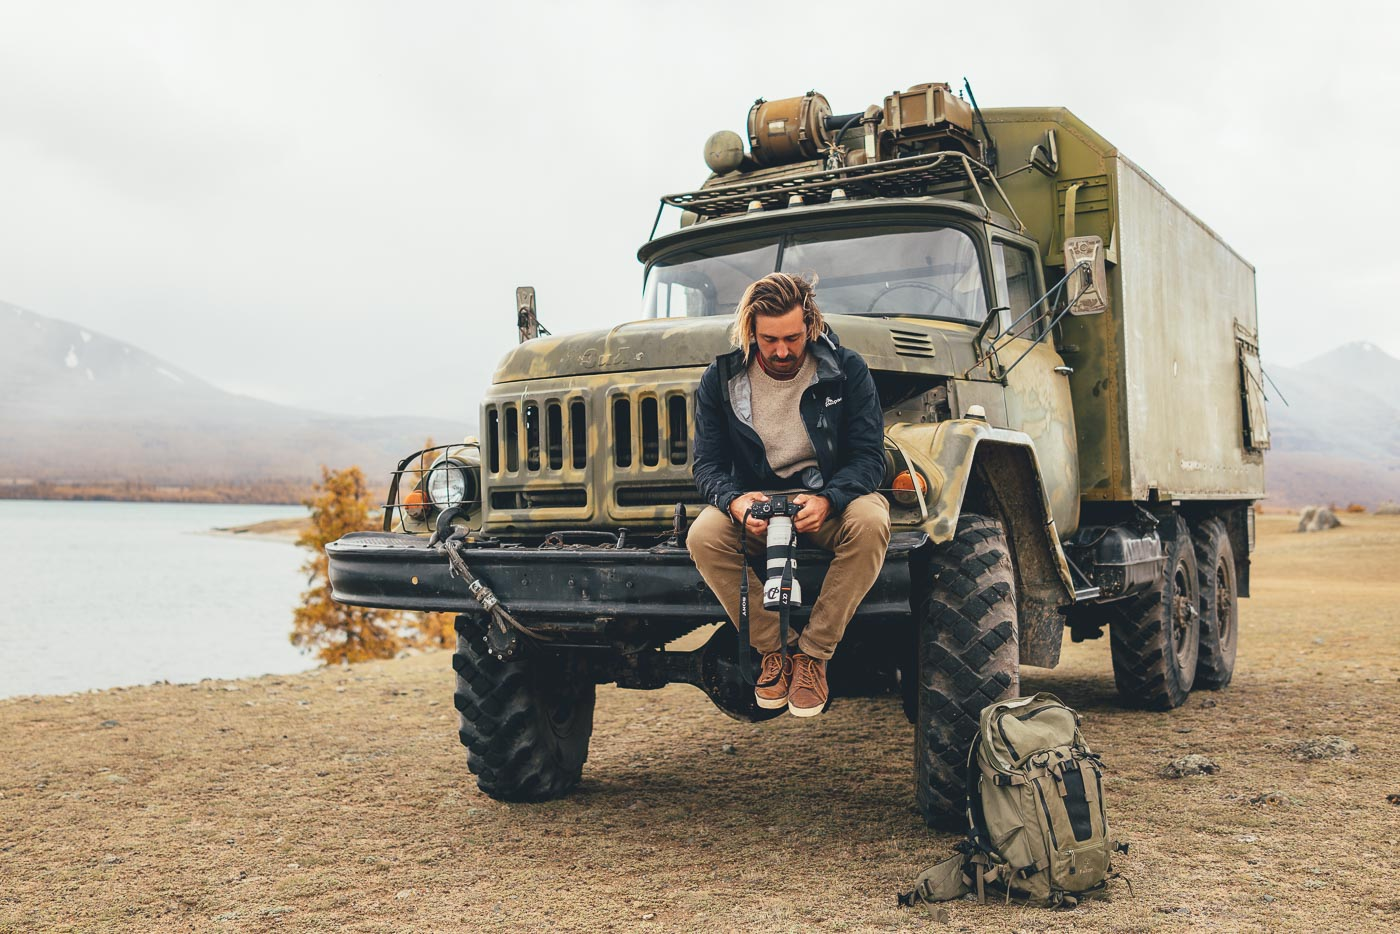 Photographer Stefan Haworth on the front of a military truck